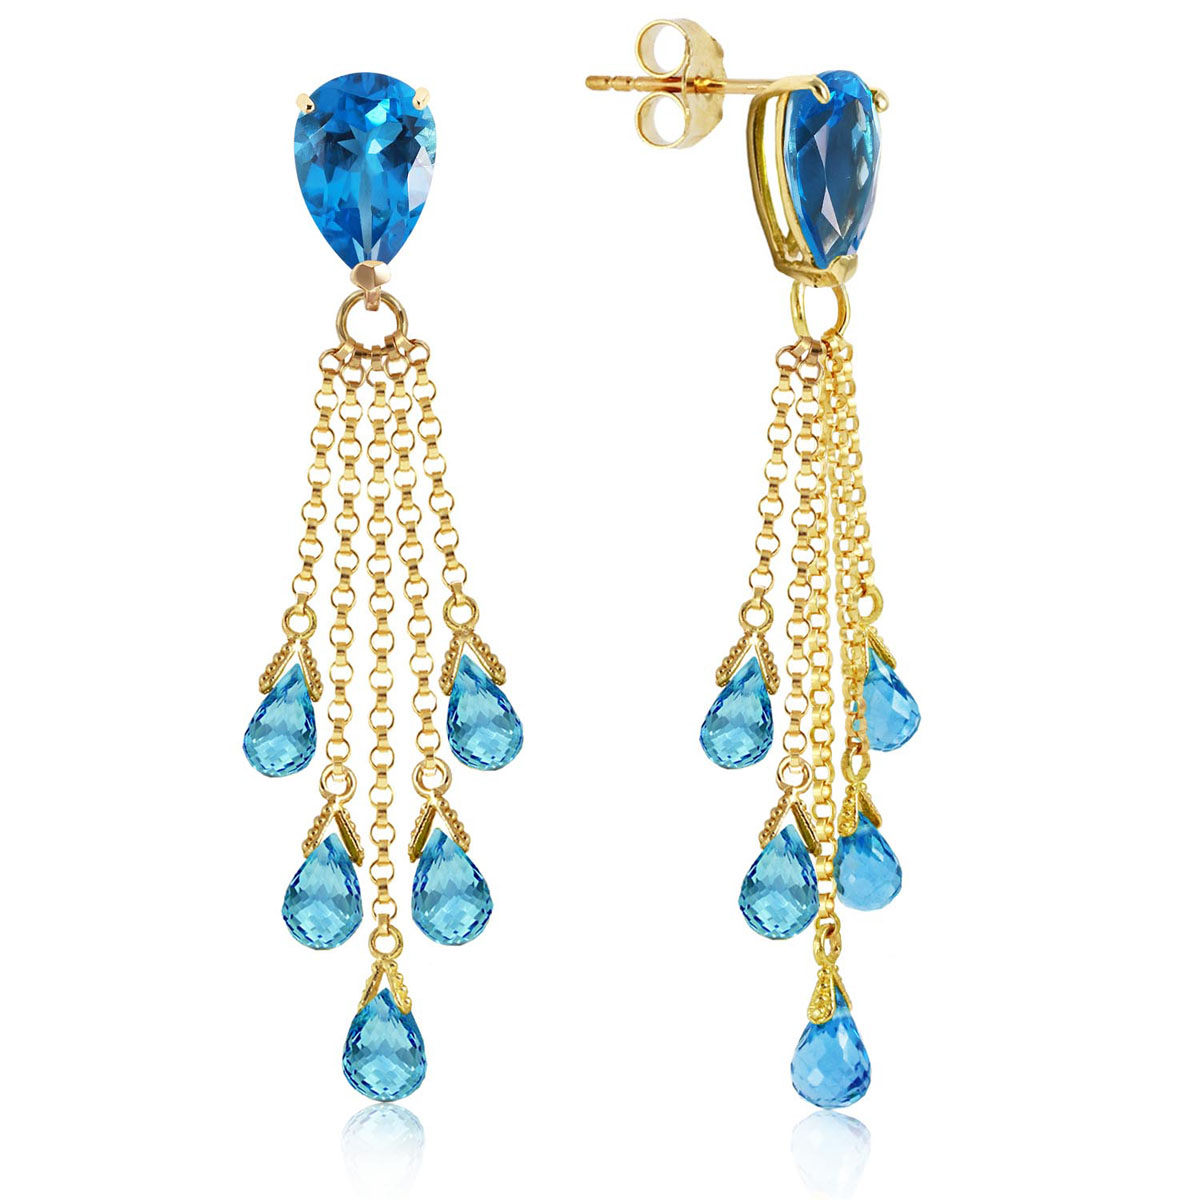 Blue Topaz Comet Tail Drop Earrings 15.5 ctw in 9ct Gold